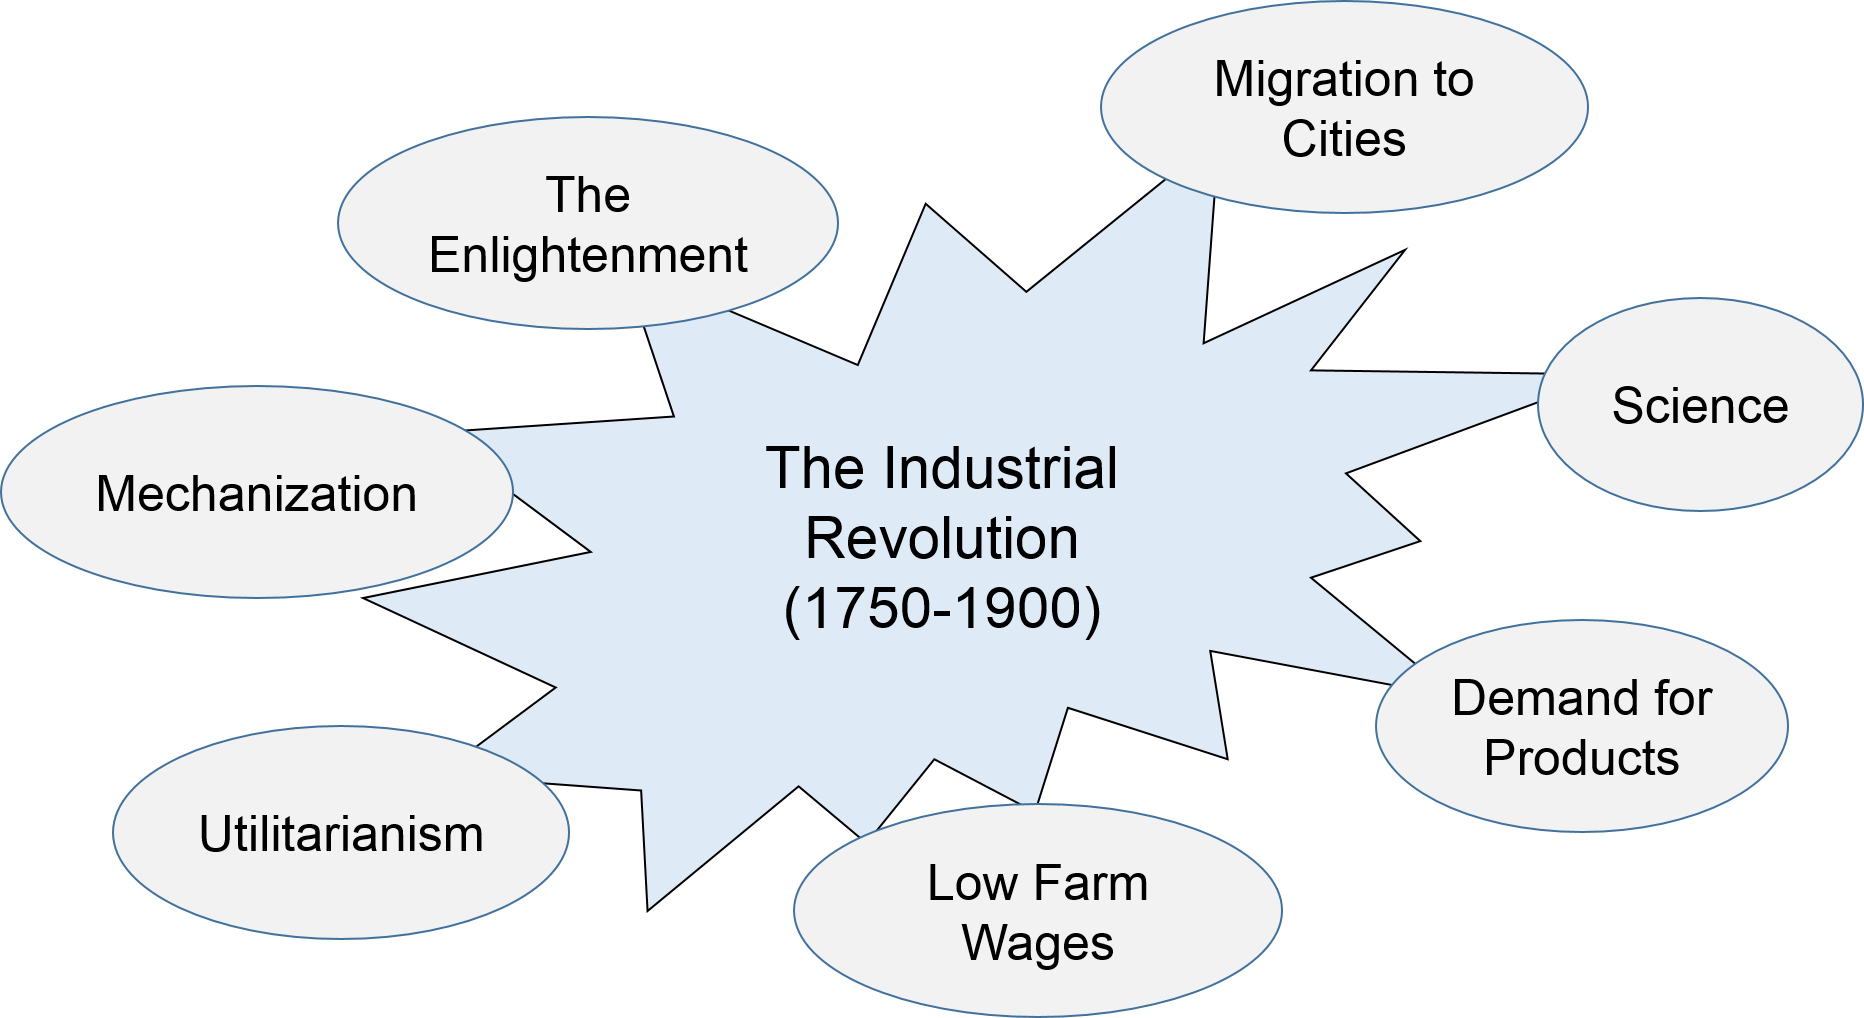 This image depicts the various factors/aspects of the Industrial Revolution.